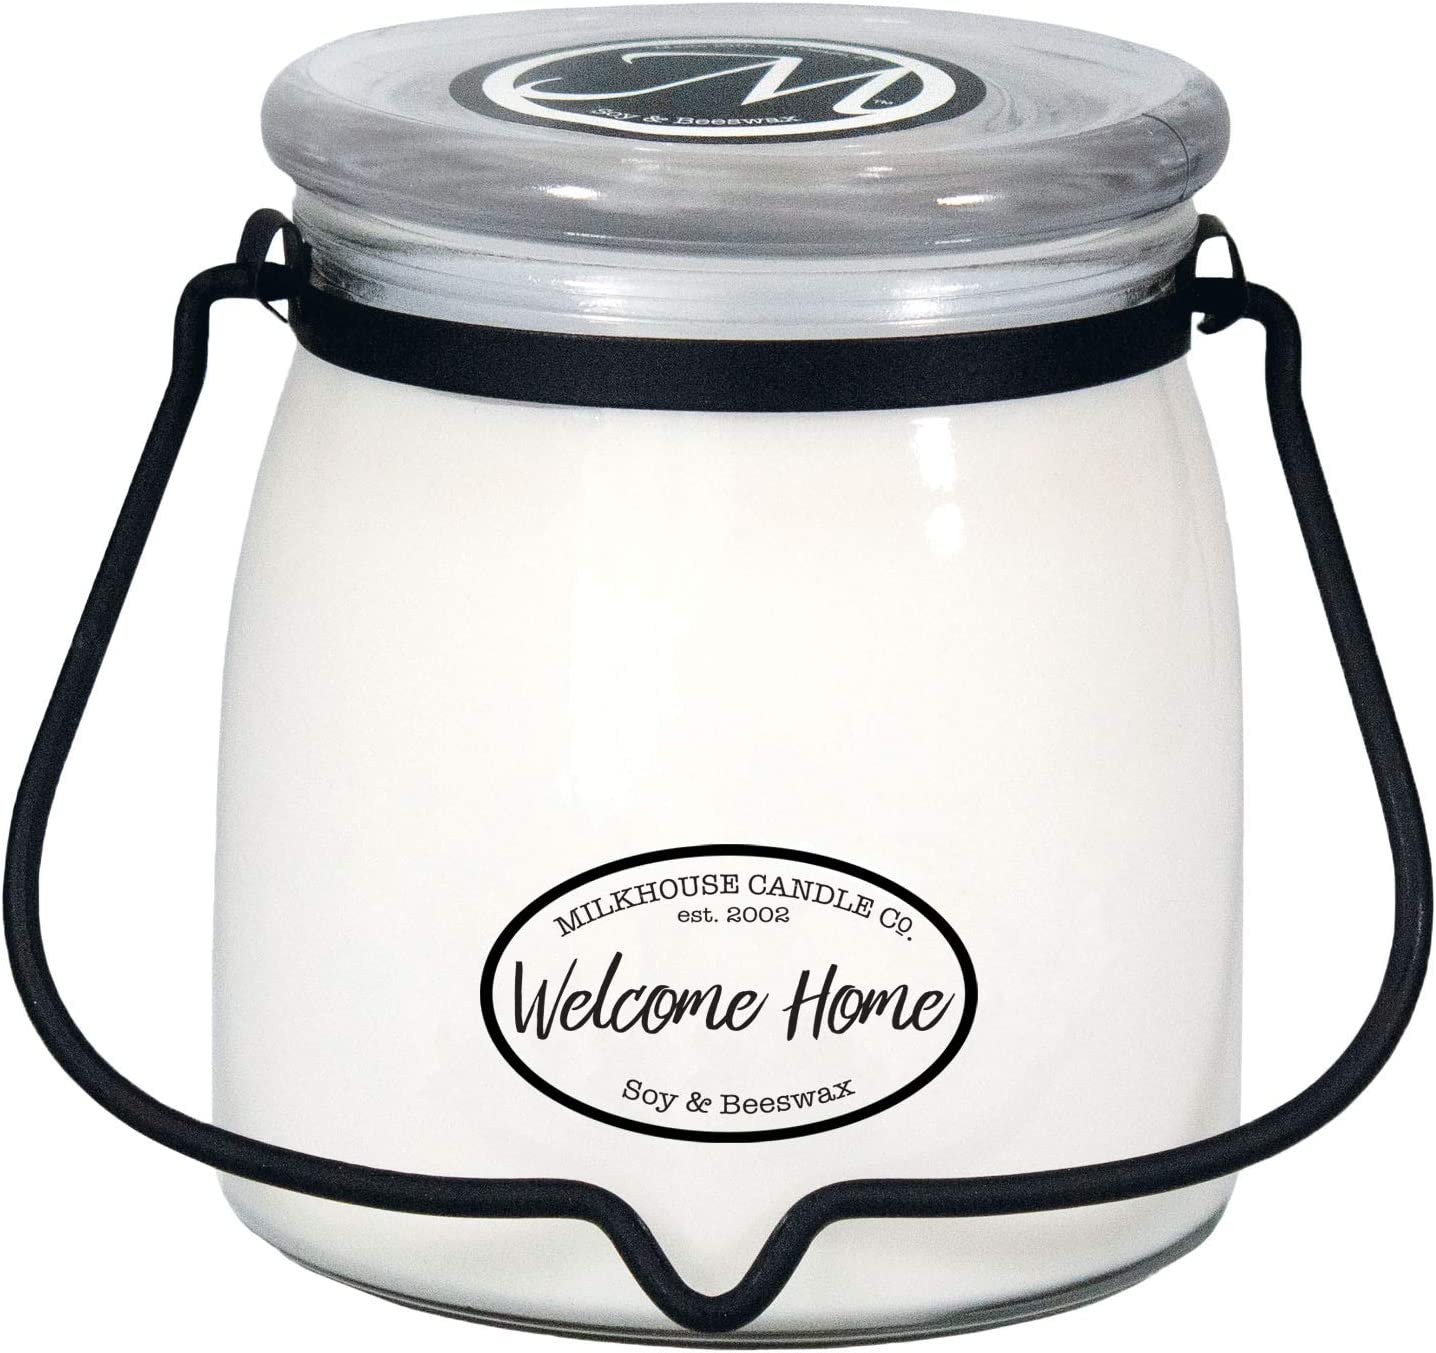 Milkhouse Candle Creamery Butter Jar Candle, Welcome Home, 16-Ounce